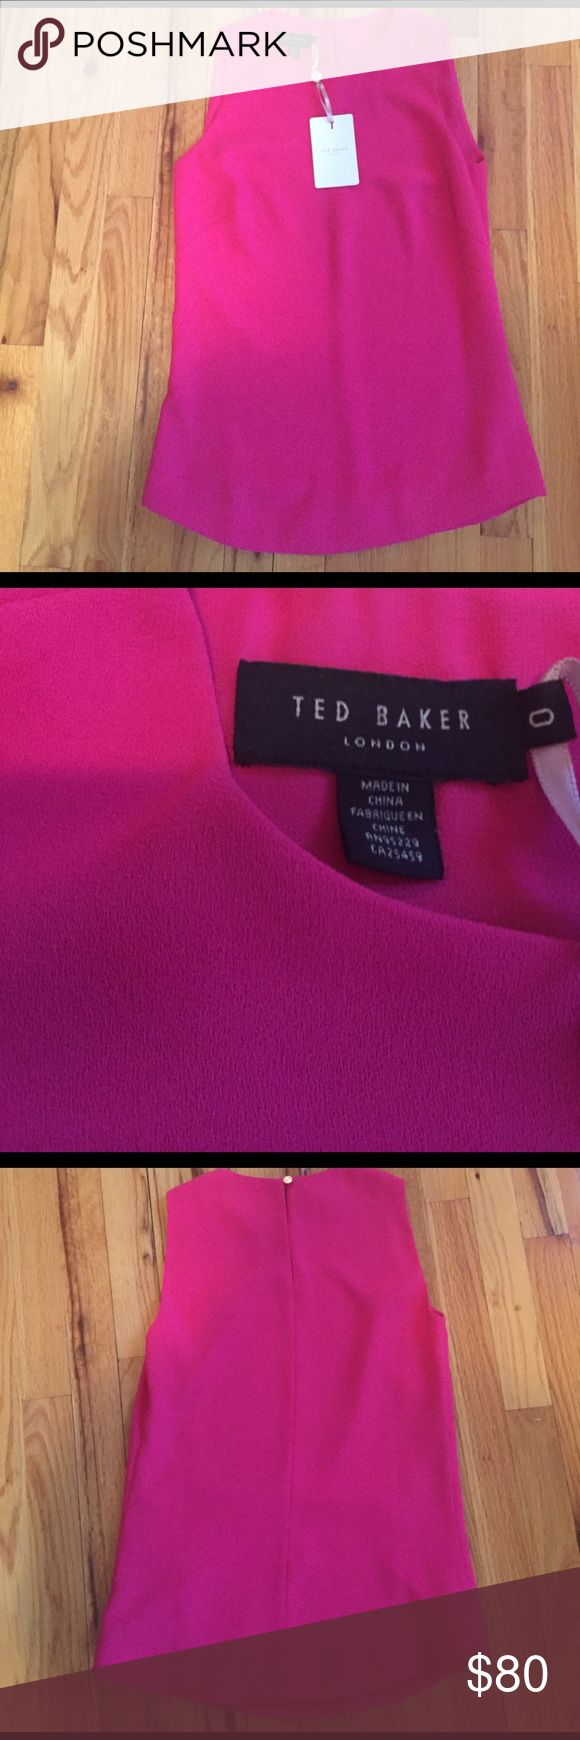 NWT Ted Baker London sleeveless Crepe Top blouse New with tags Ted Baker sleeveless crepe top blouse in the color 54-pink. Size 0 in Ted Baker but a US 2. It has a back button loop keyhole closure. 100% polyester shell and lining. Ted Baker London Tops Blouses